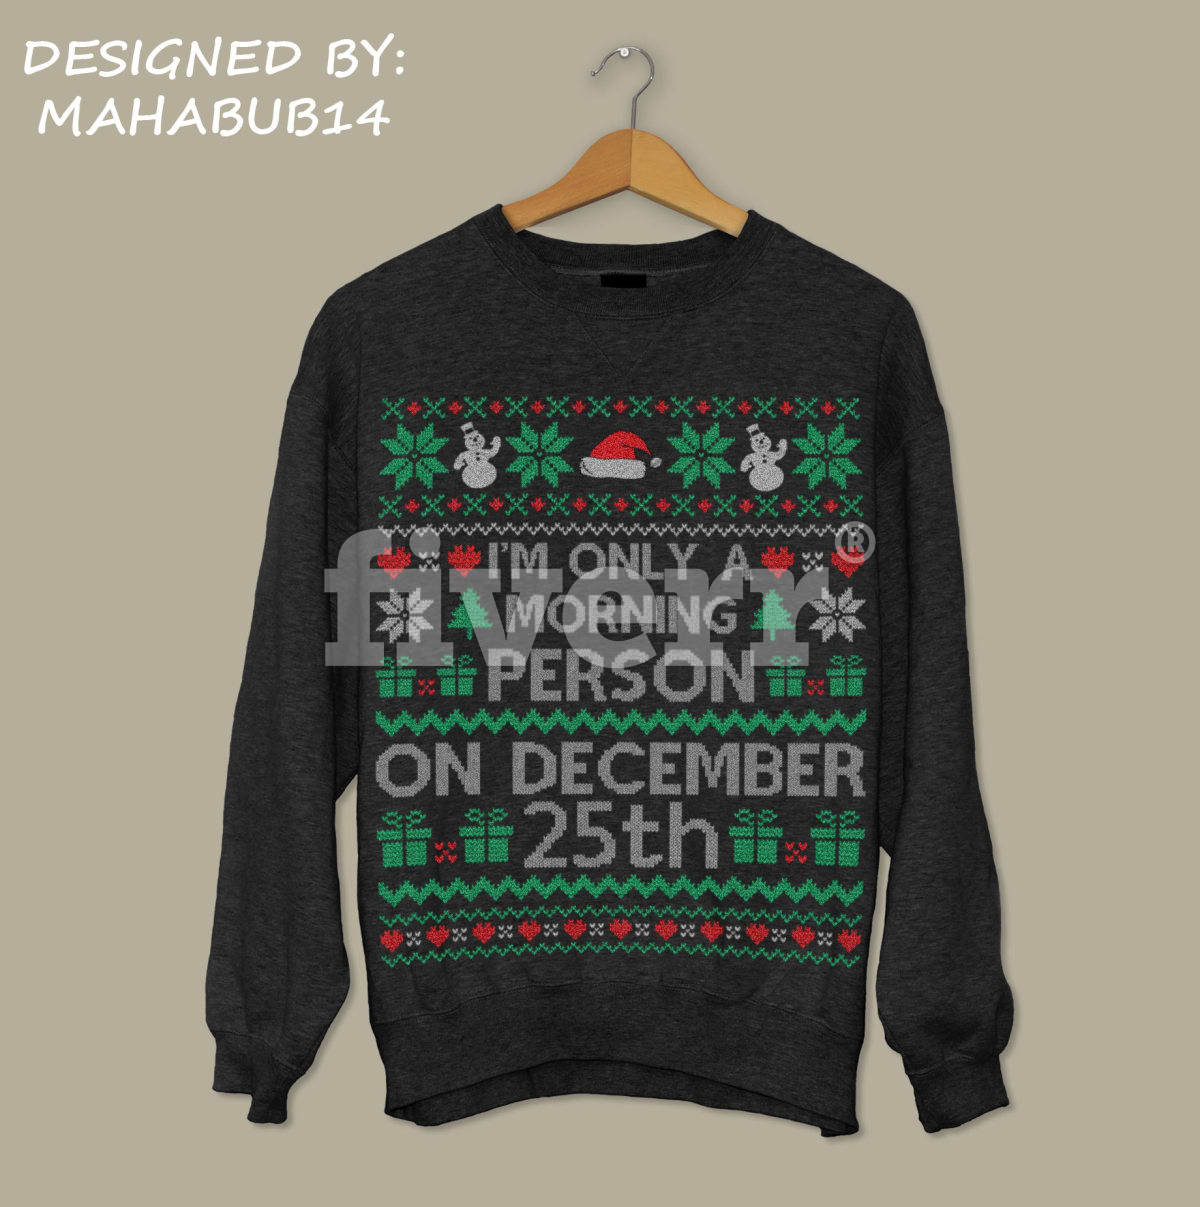 2019 year look- Christmas Awesome sweater design pictures